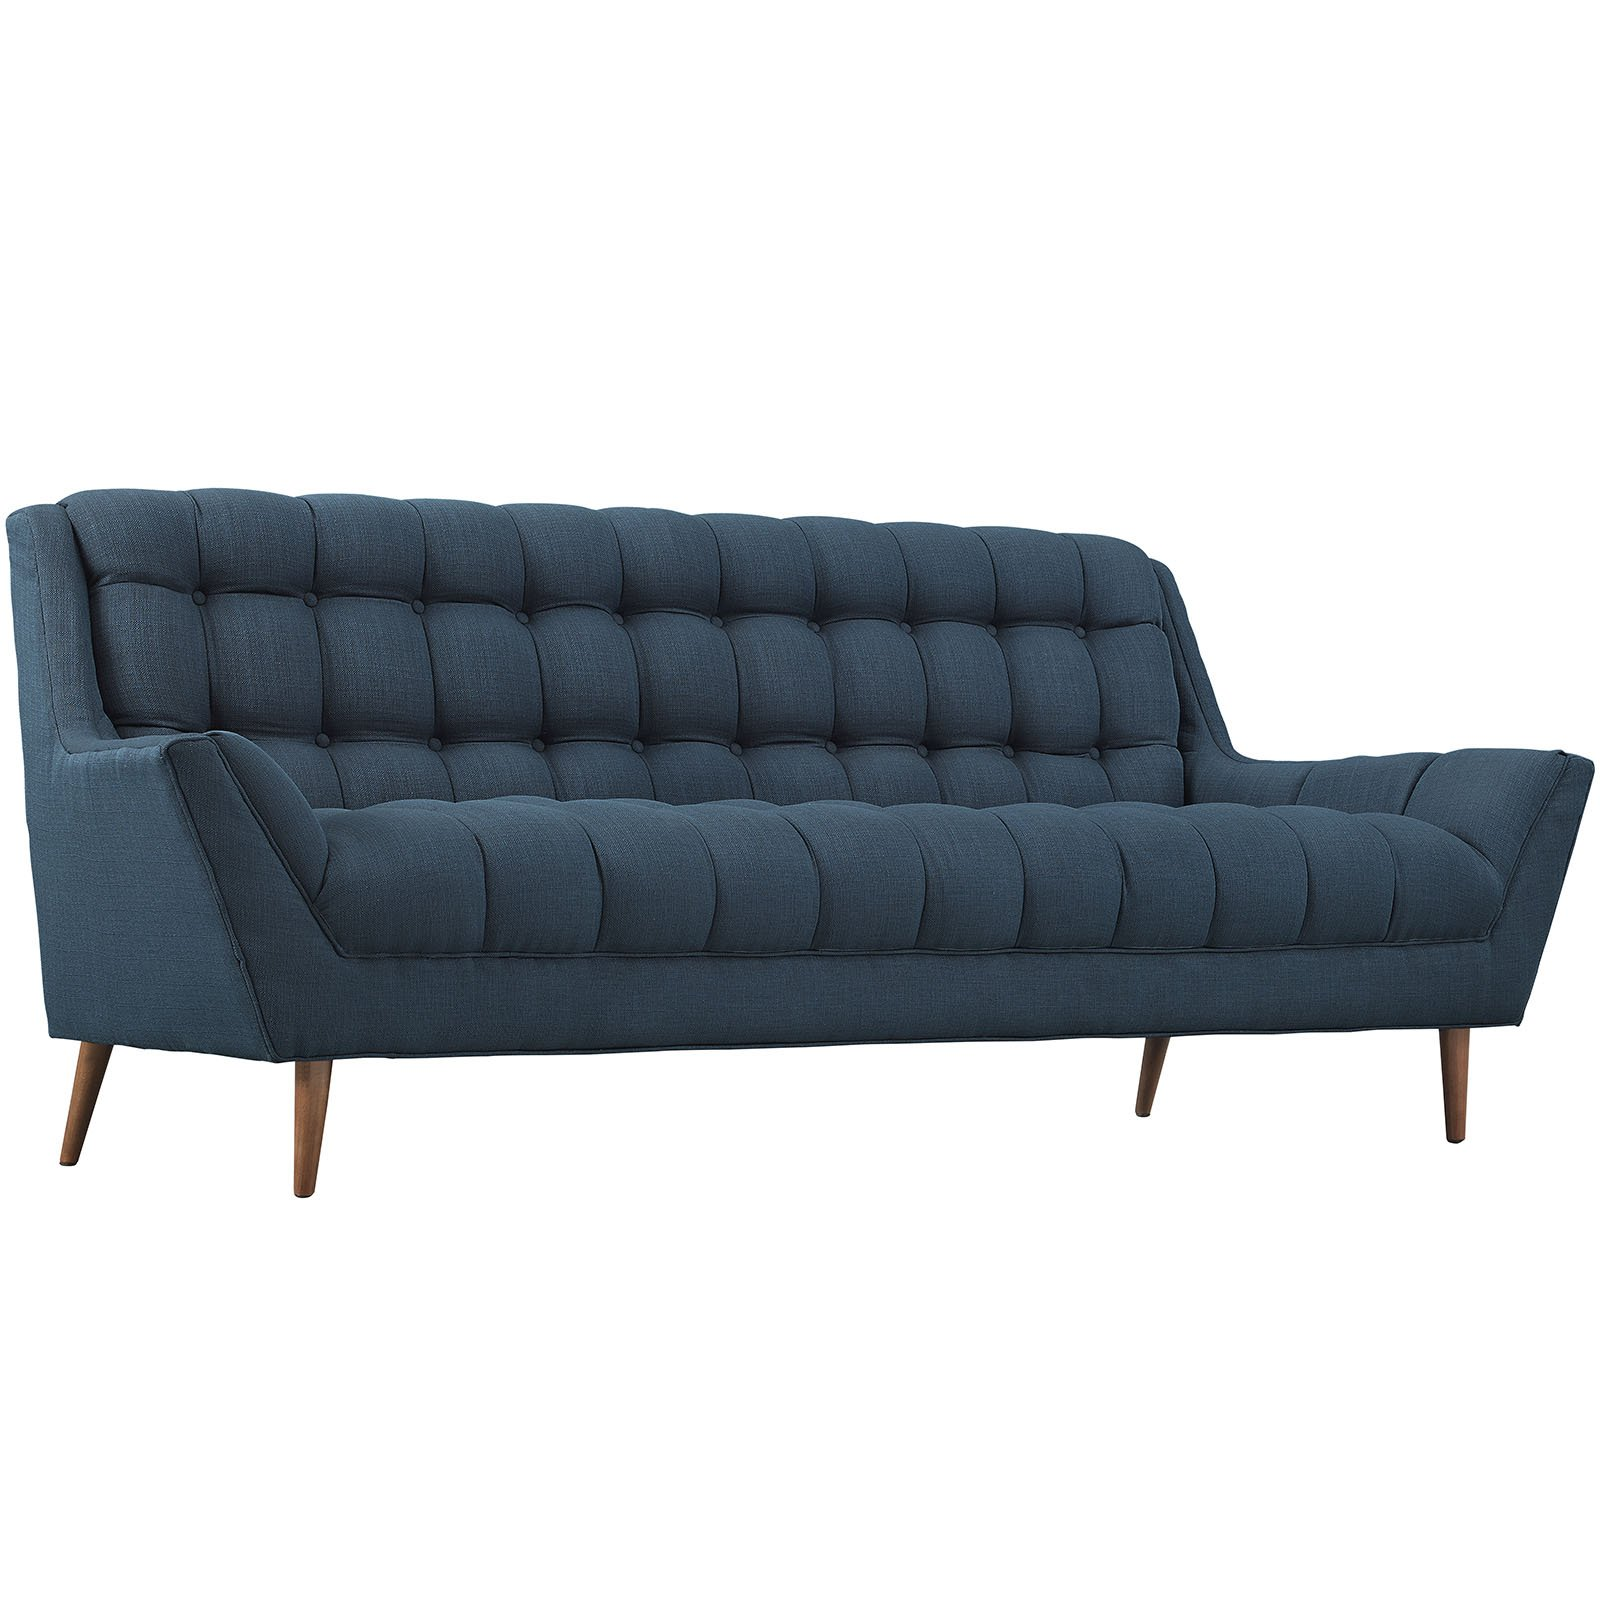 Modway Response Mid-Century Modern Sofa Upholstered Fabric in Azure by Modway